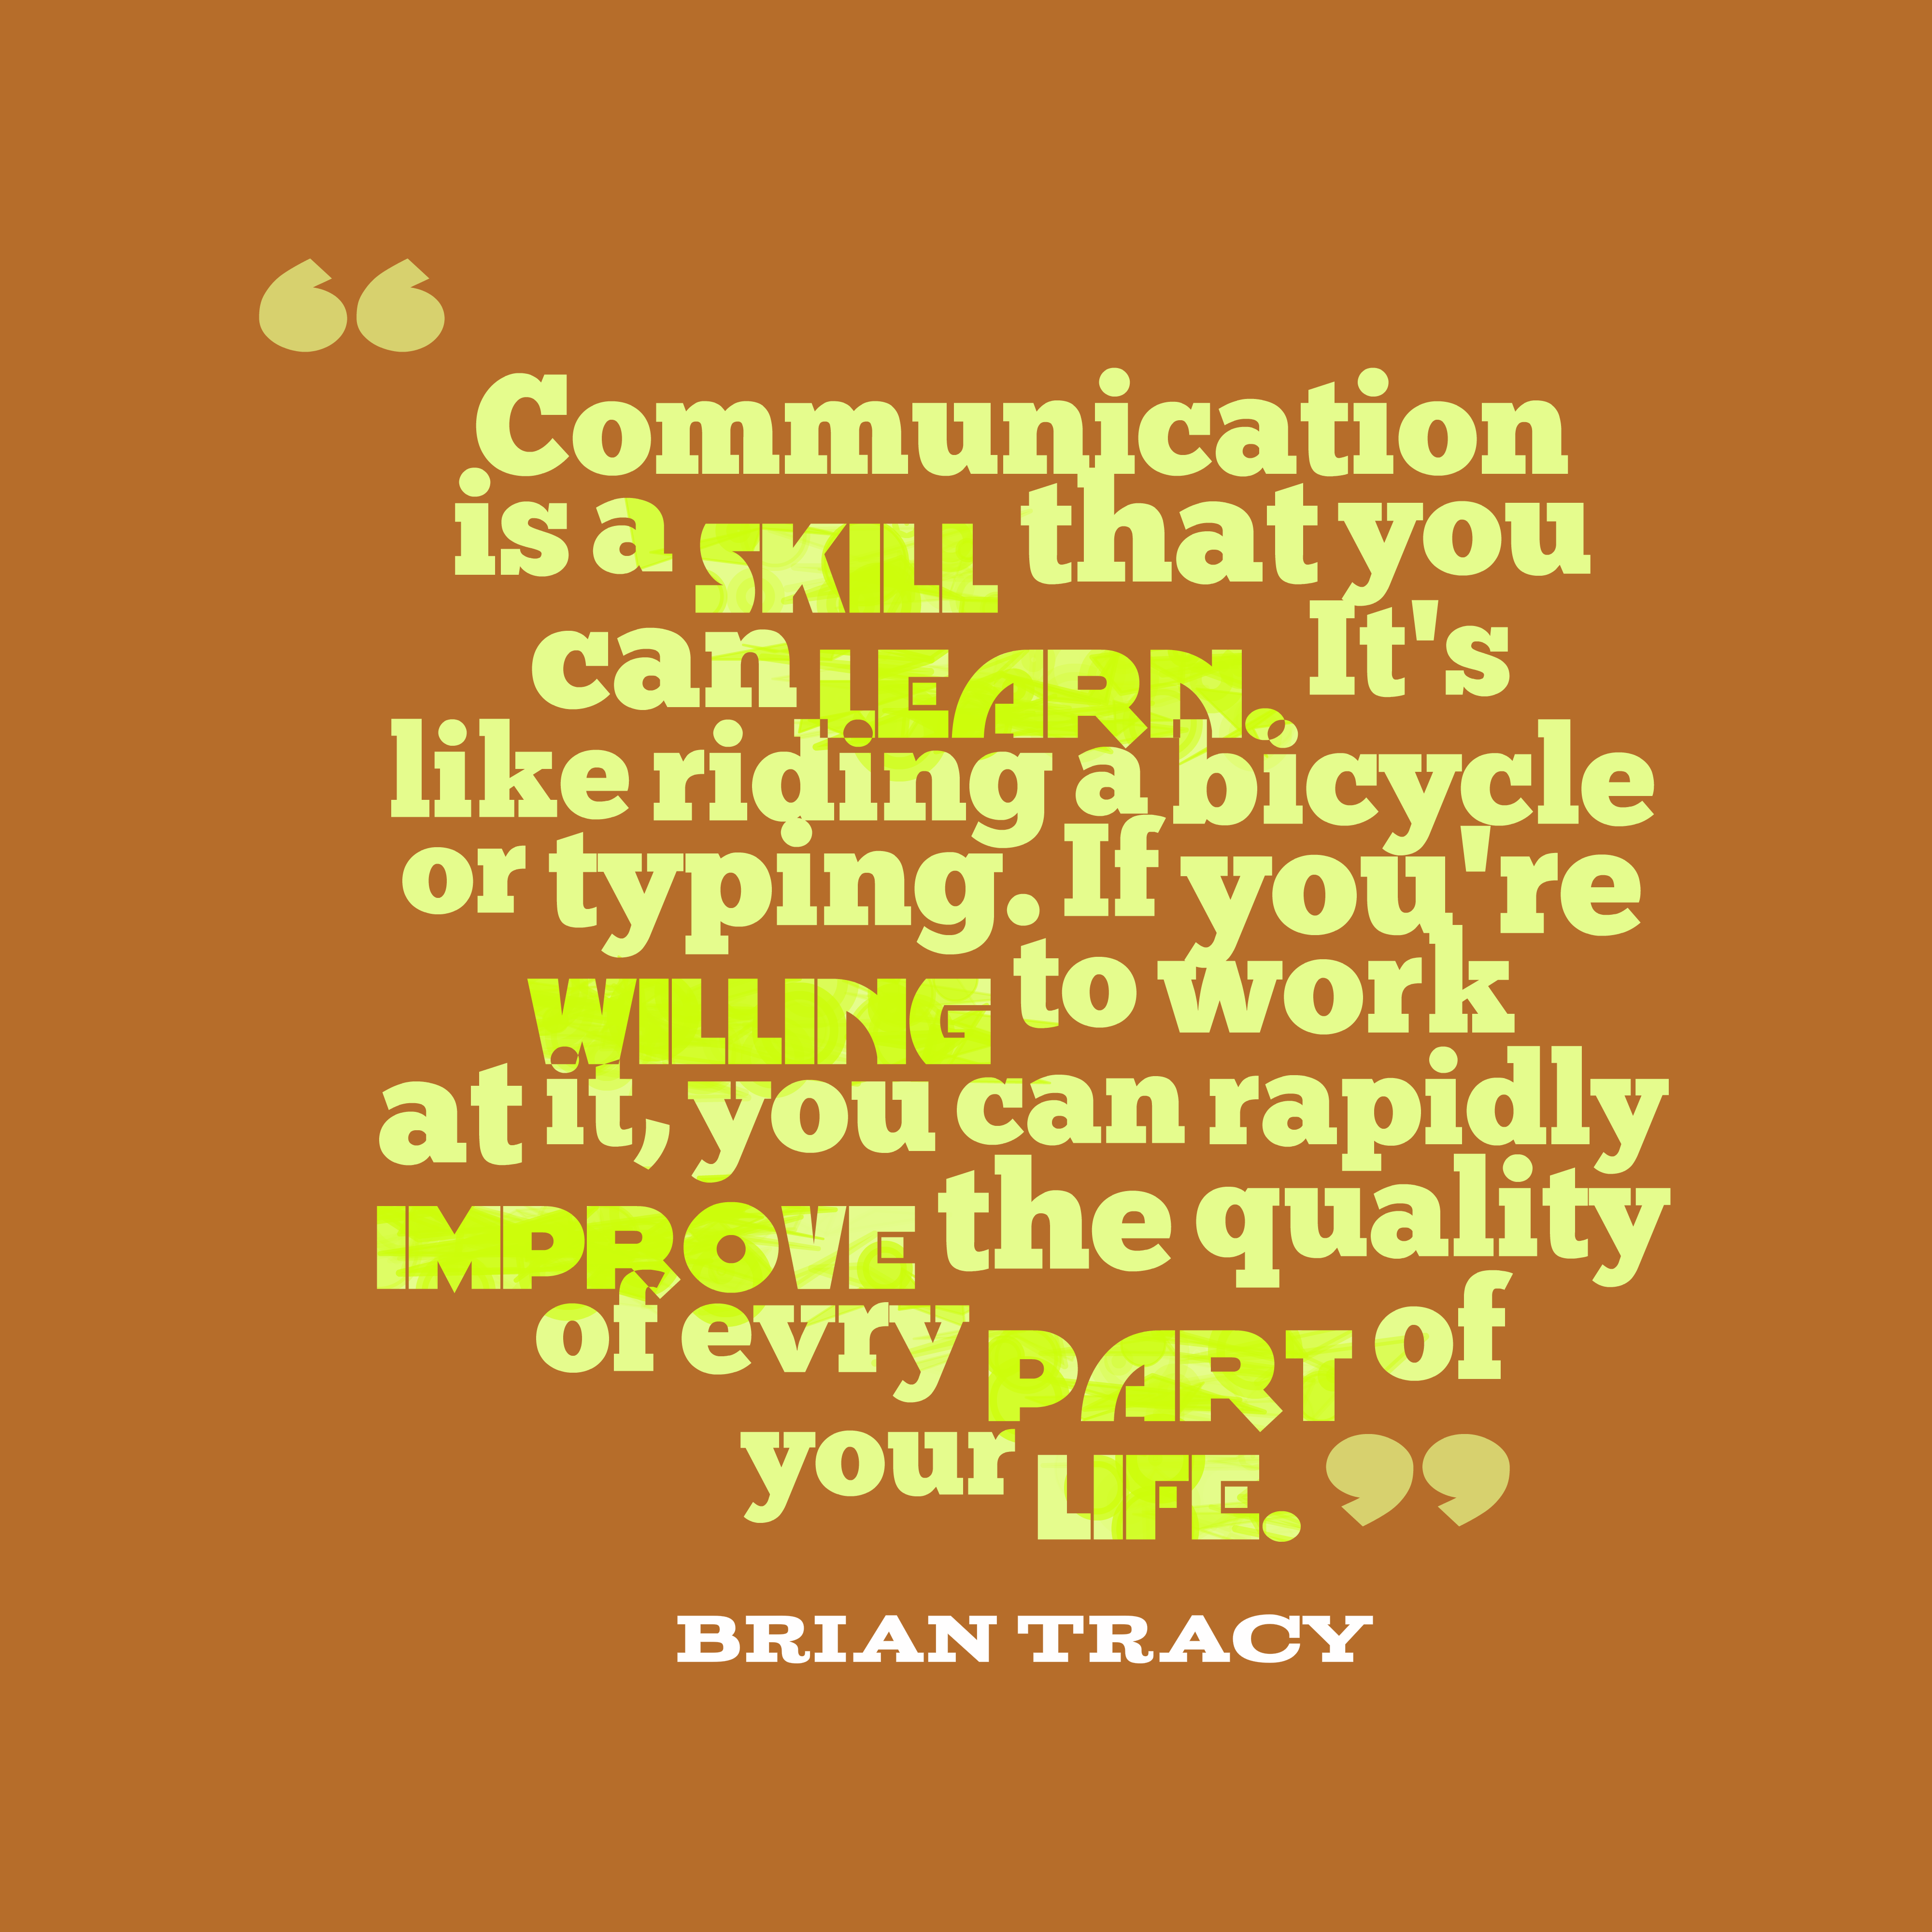 Picture » Brian Tracy Quote About Communication